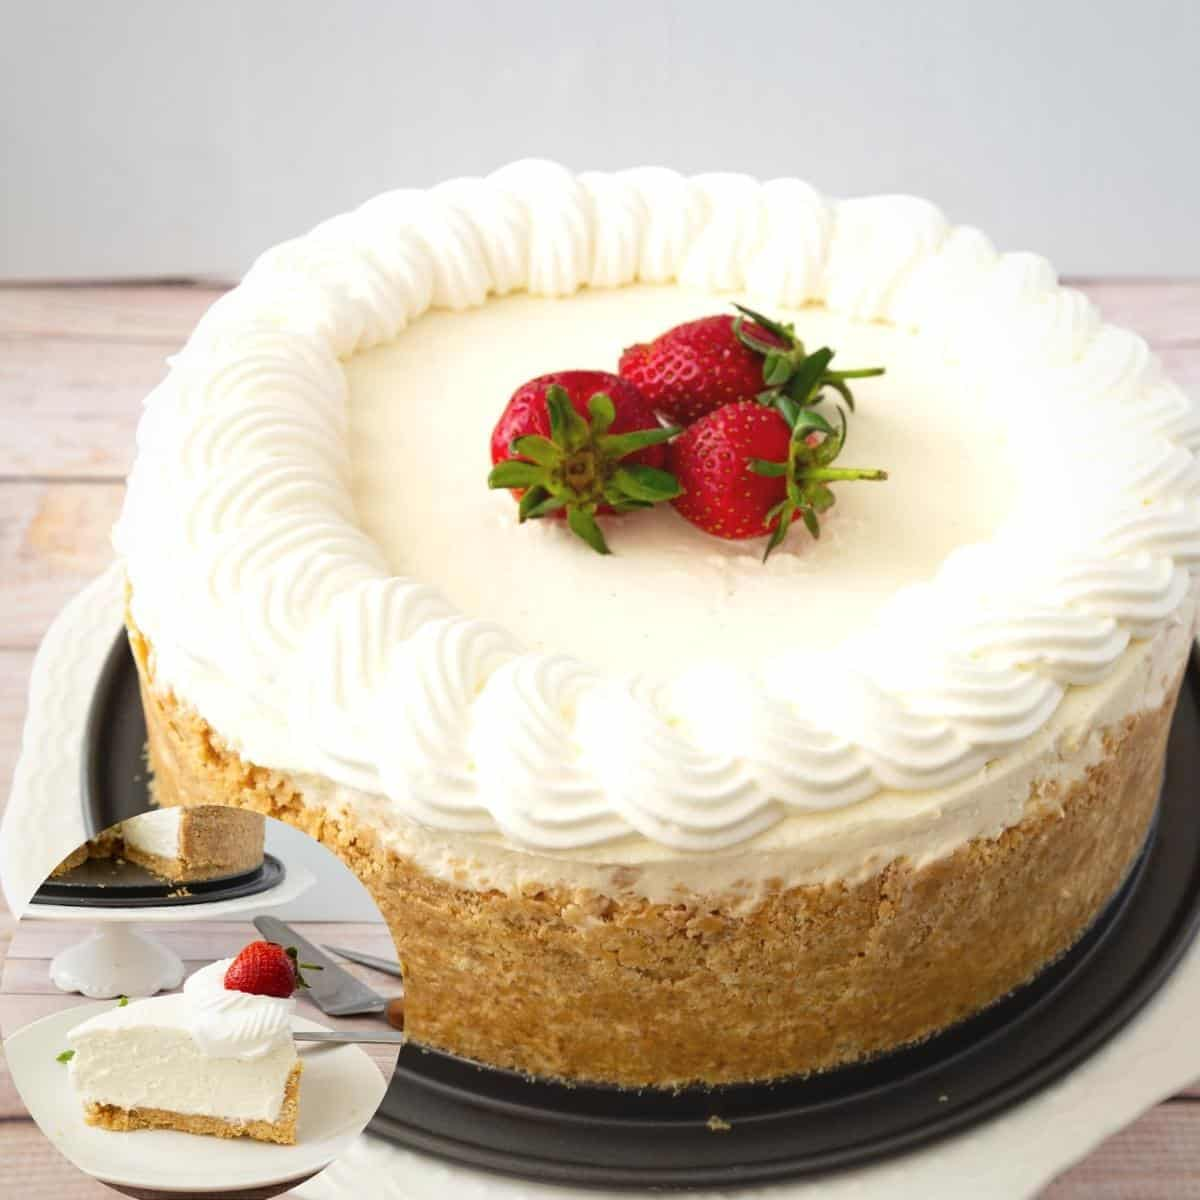 A frosted cheesecake on a cake stand.